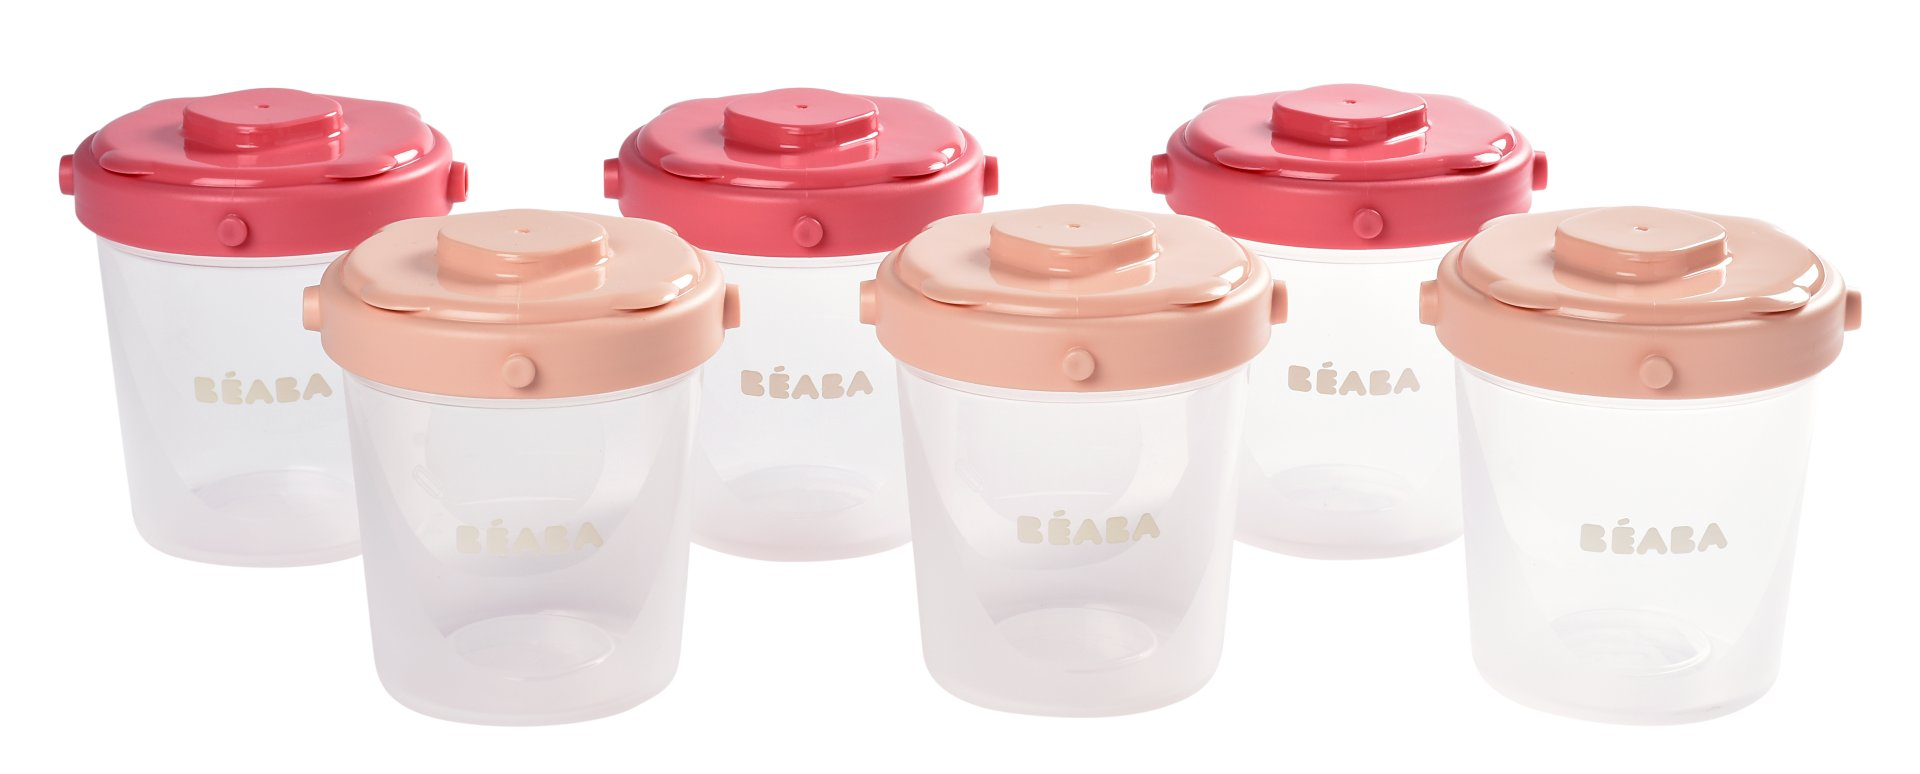 Beaba Clip Portions Set of 6